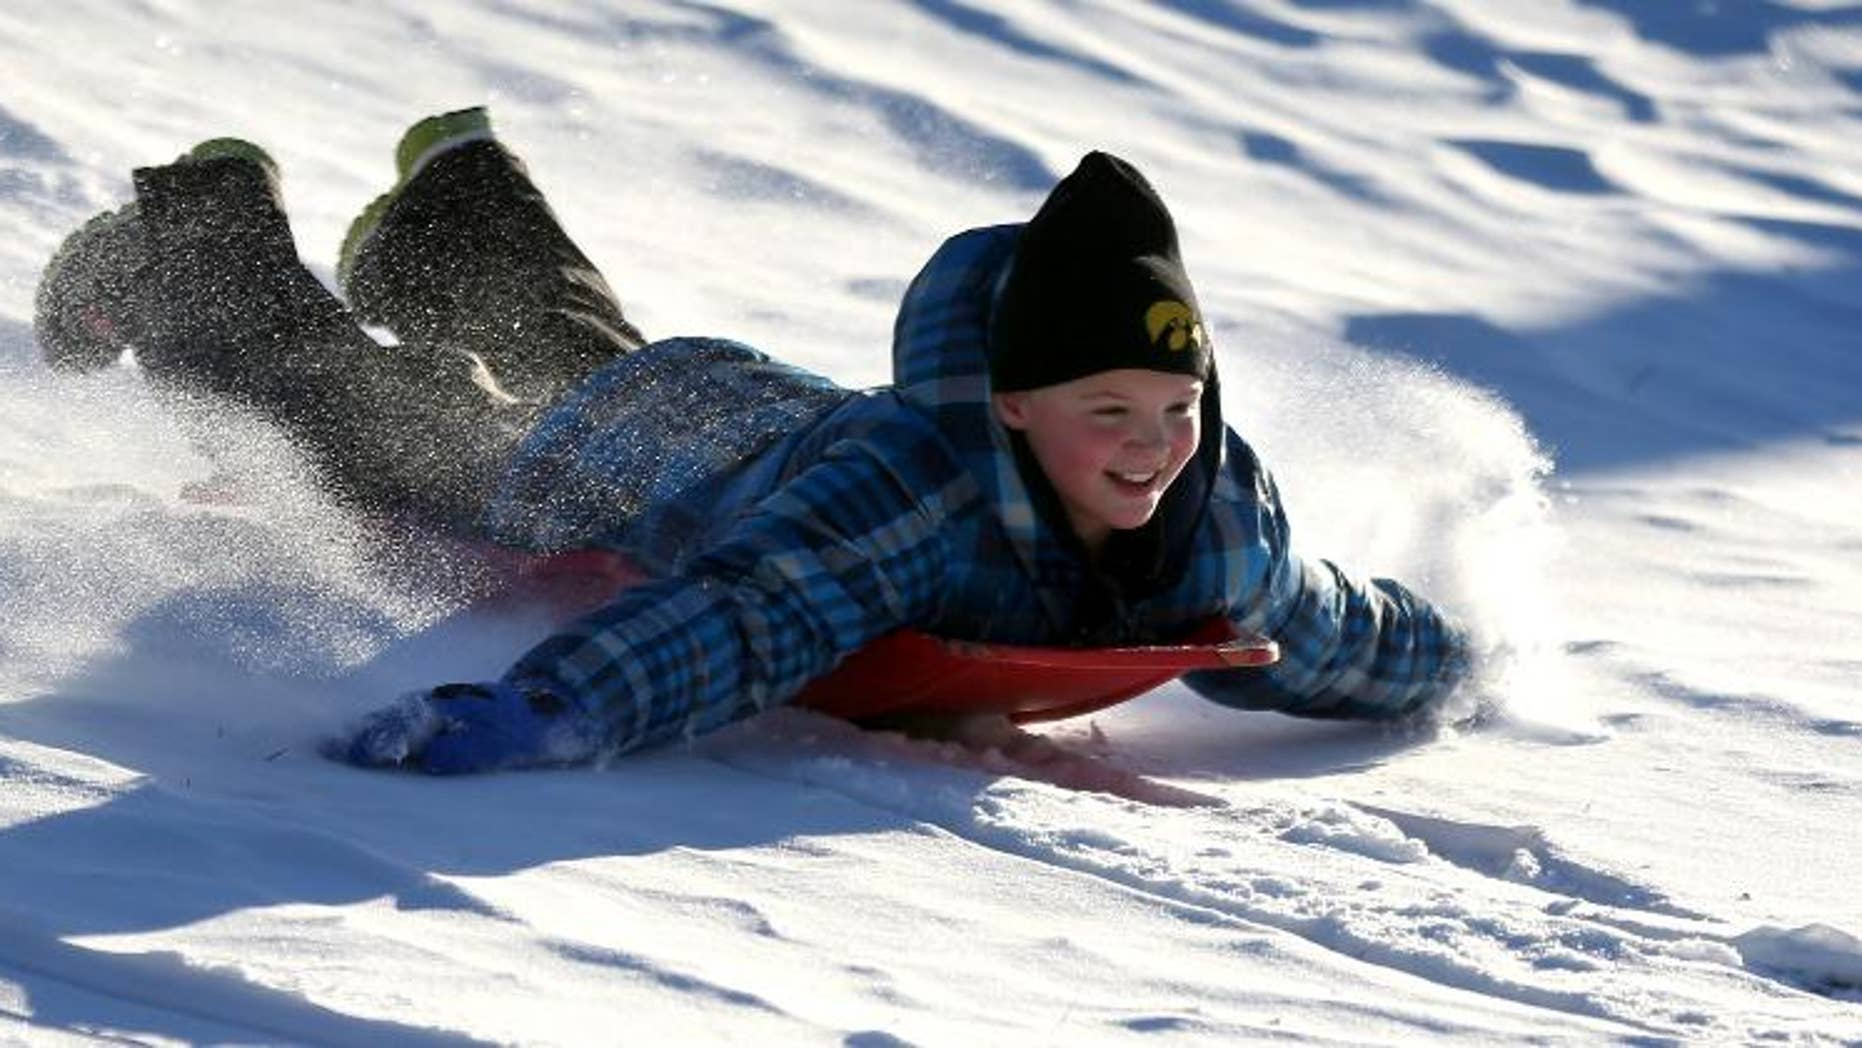 FILE - In this  Dec. 11, 2013 file photo Zoe Reisen,10, of Dubuque, Iowa, sleds down a hill at Allison-Henderson Park on in Dubuque, Iowa. Faced with the potential bills from people who are injured sledding, Dubuque is one of the cities across the country the is opting to close hills rather than face the risk of large liability claims. (AP Photo/The Telegraph Herald, Jessica Reilly, File)